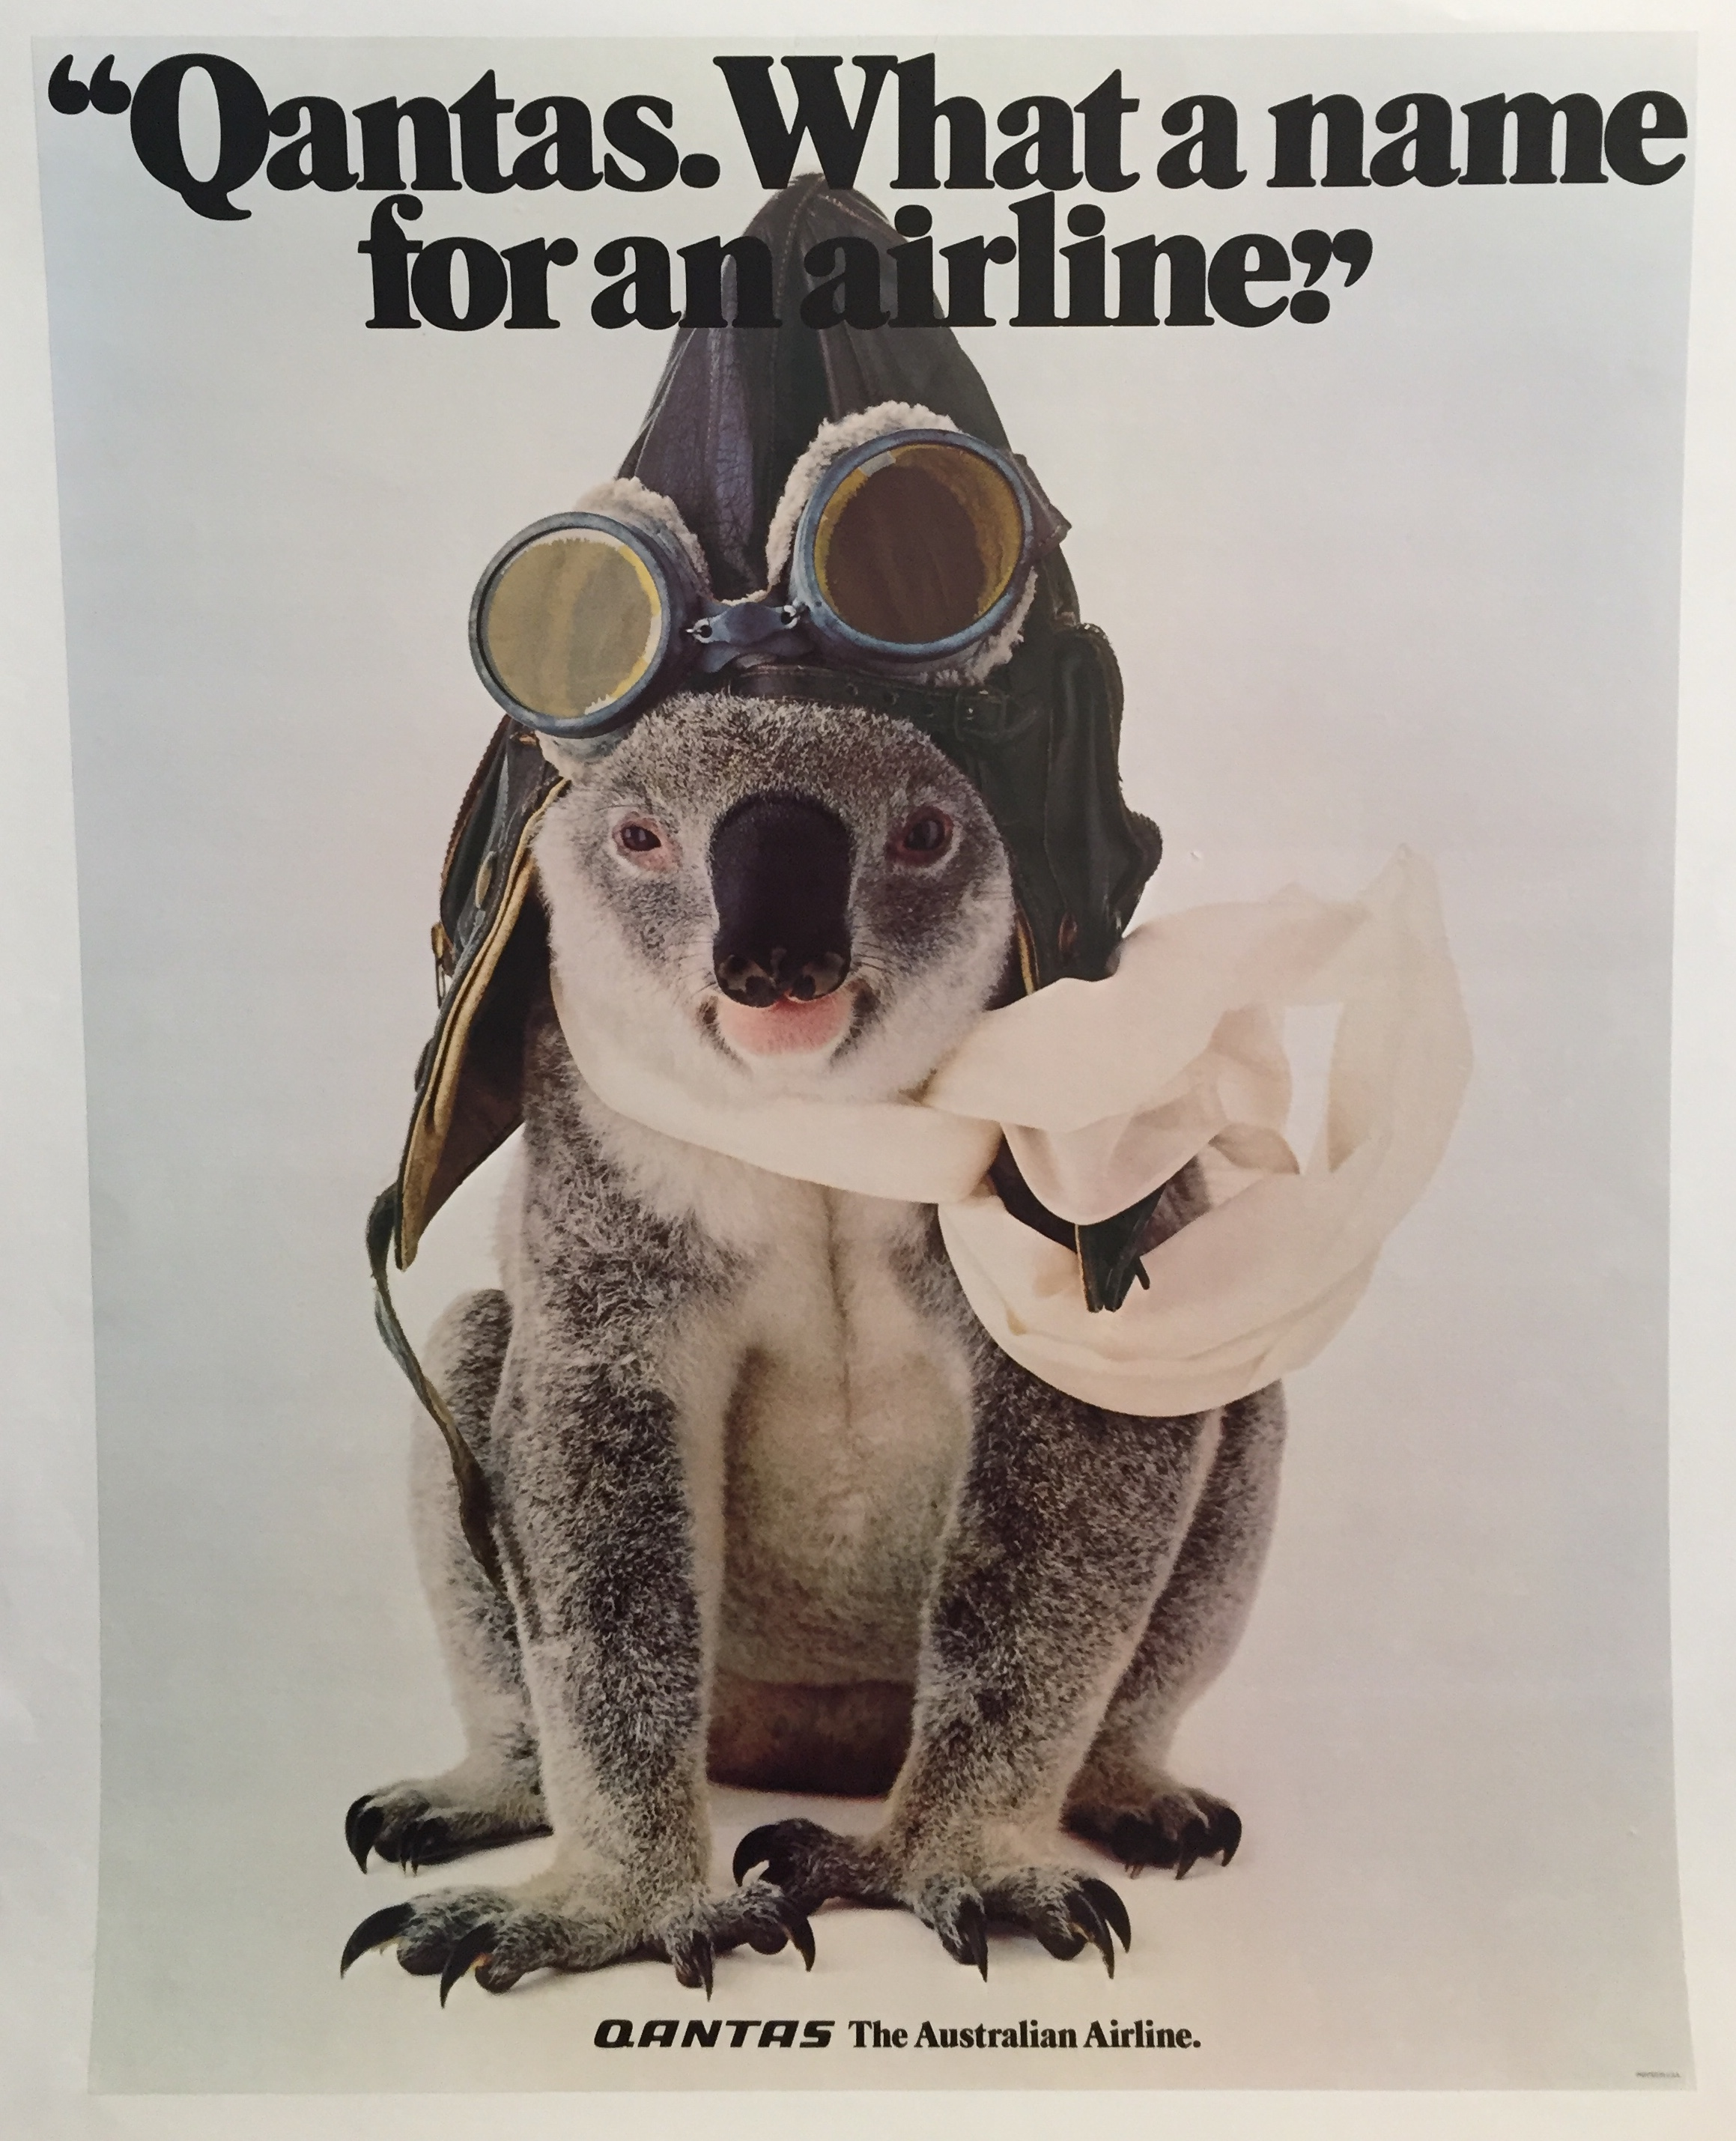 Qantas. What a name for an airline Original Vintage Poster